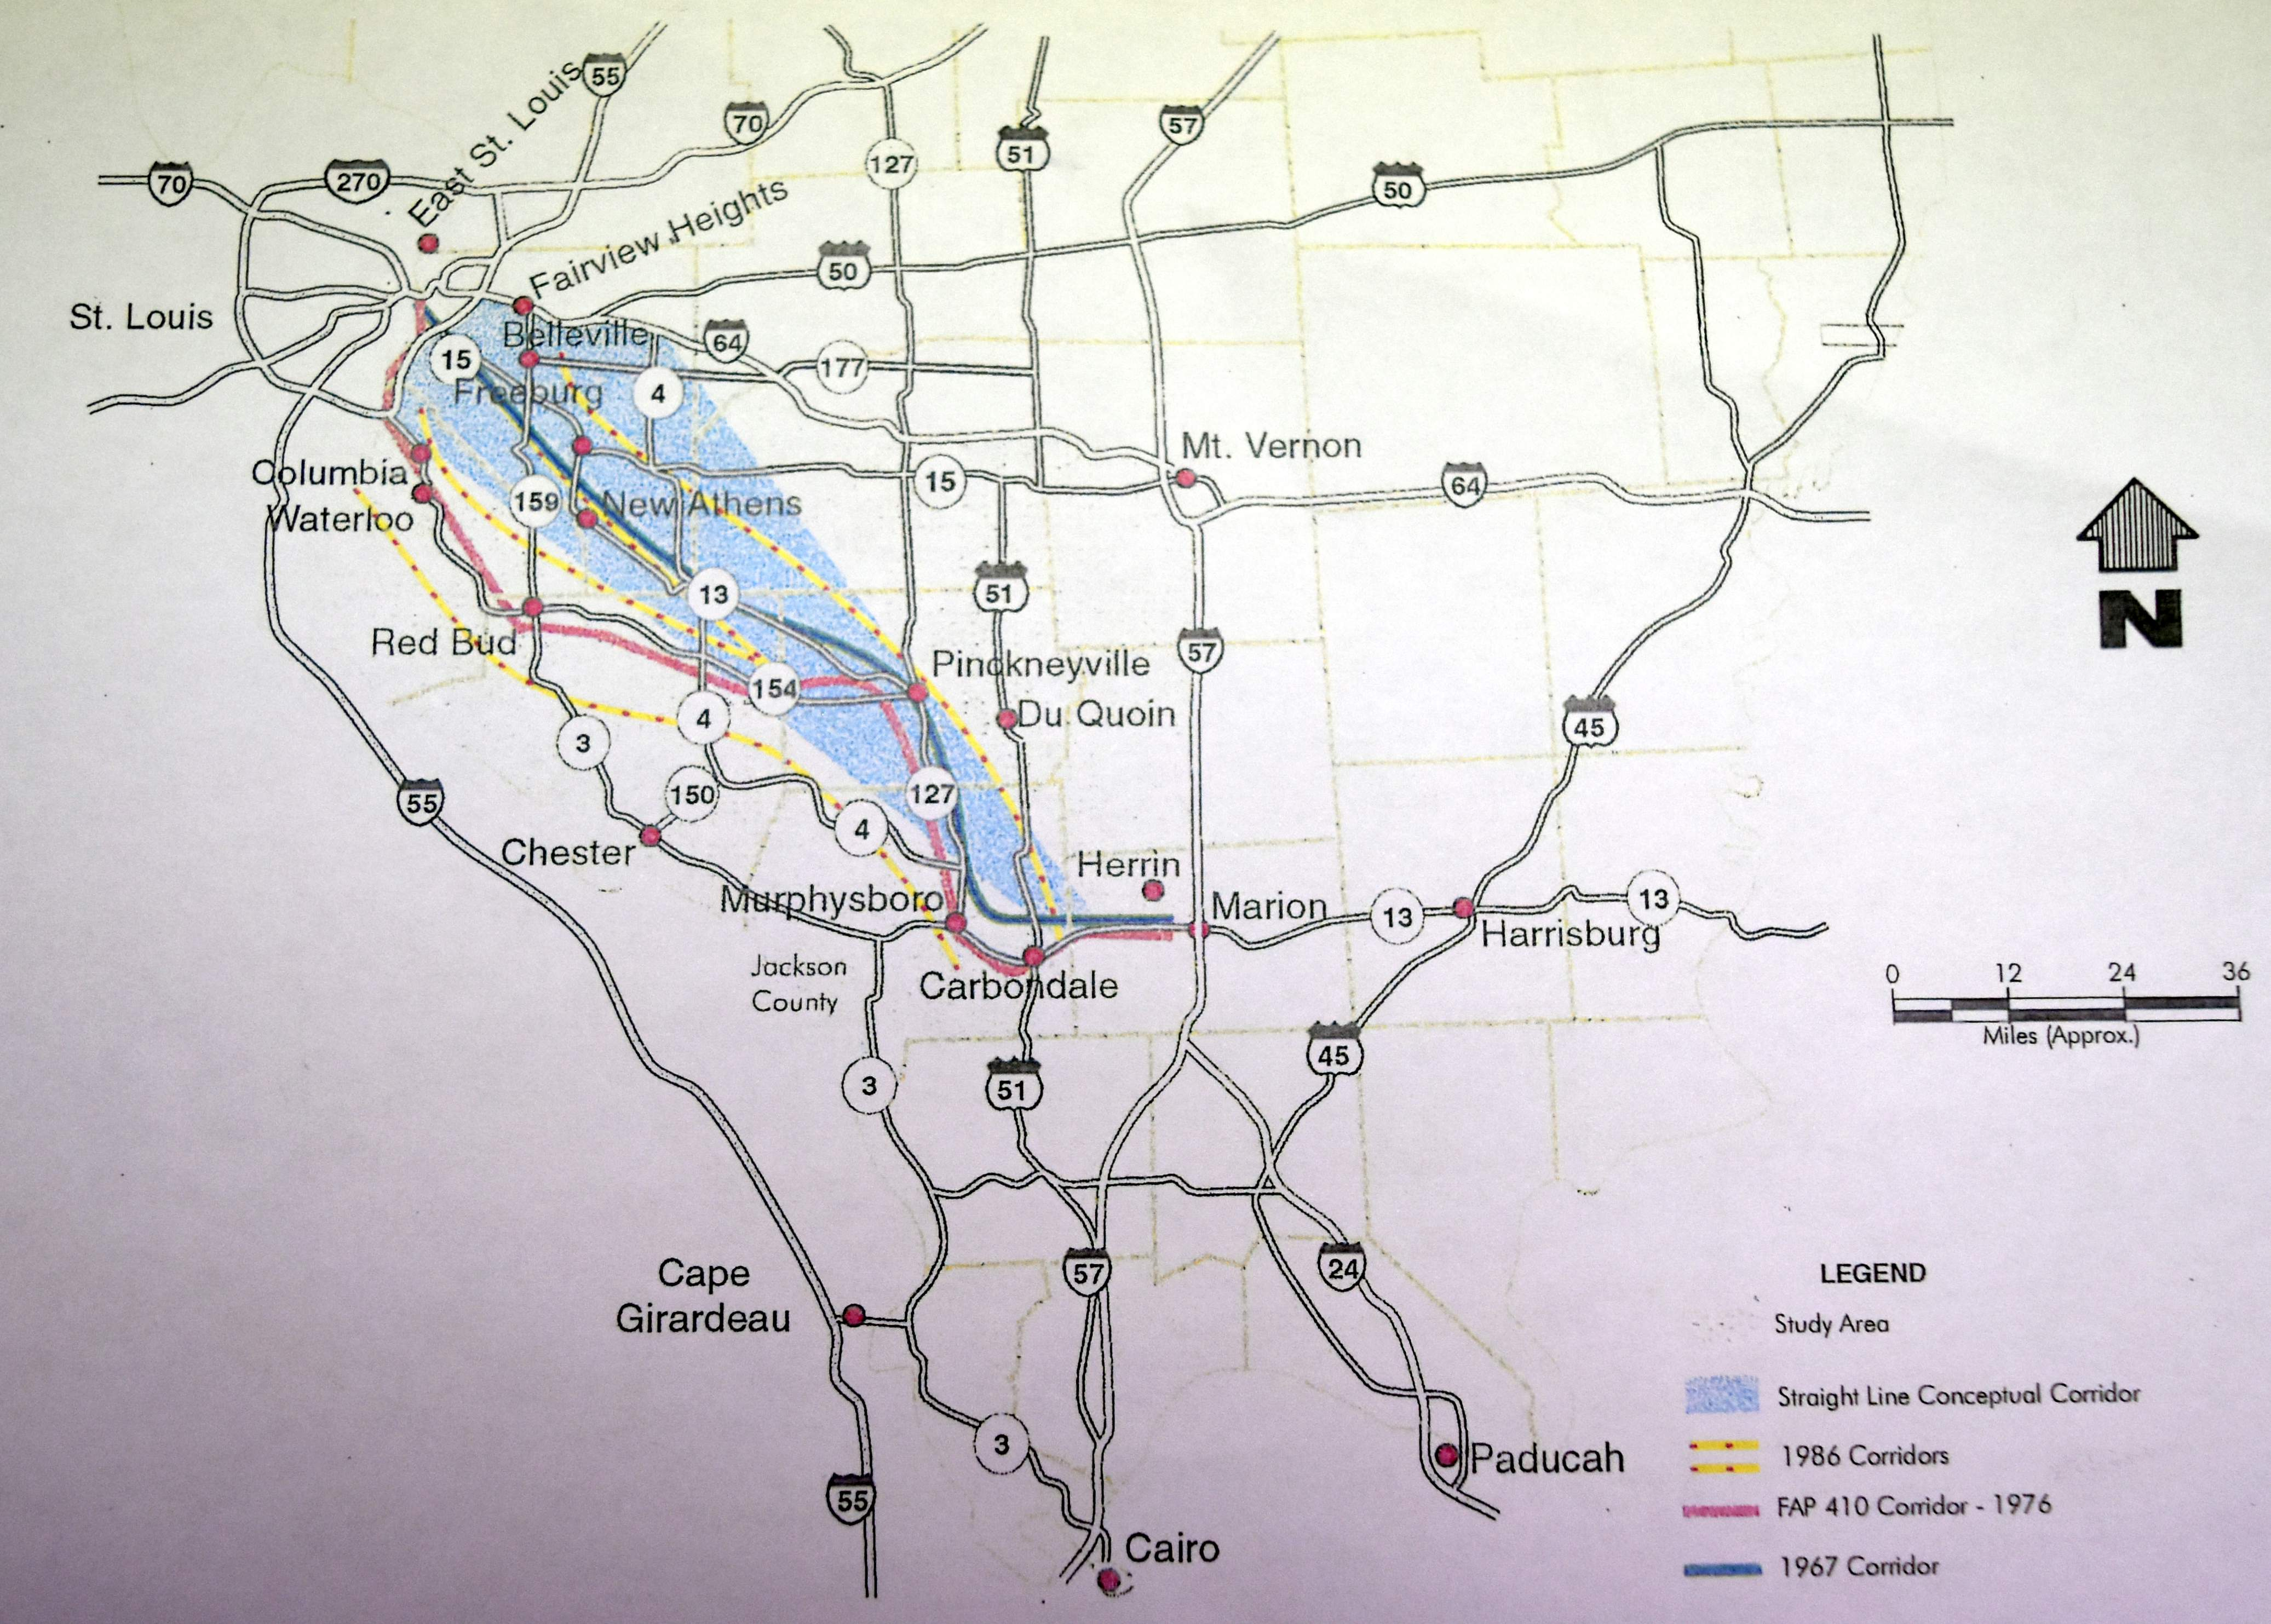 This map shows the Jackson County to St. Louis Metro East corridor that was studied for a four-lane highway in 1967, 1976, 1986, 1995 and 1996. It was previously known as the Southwest Illinois Tollway.